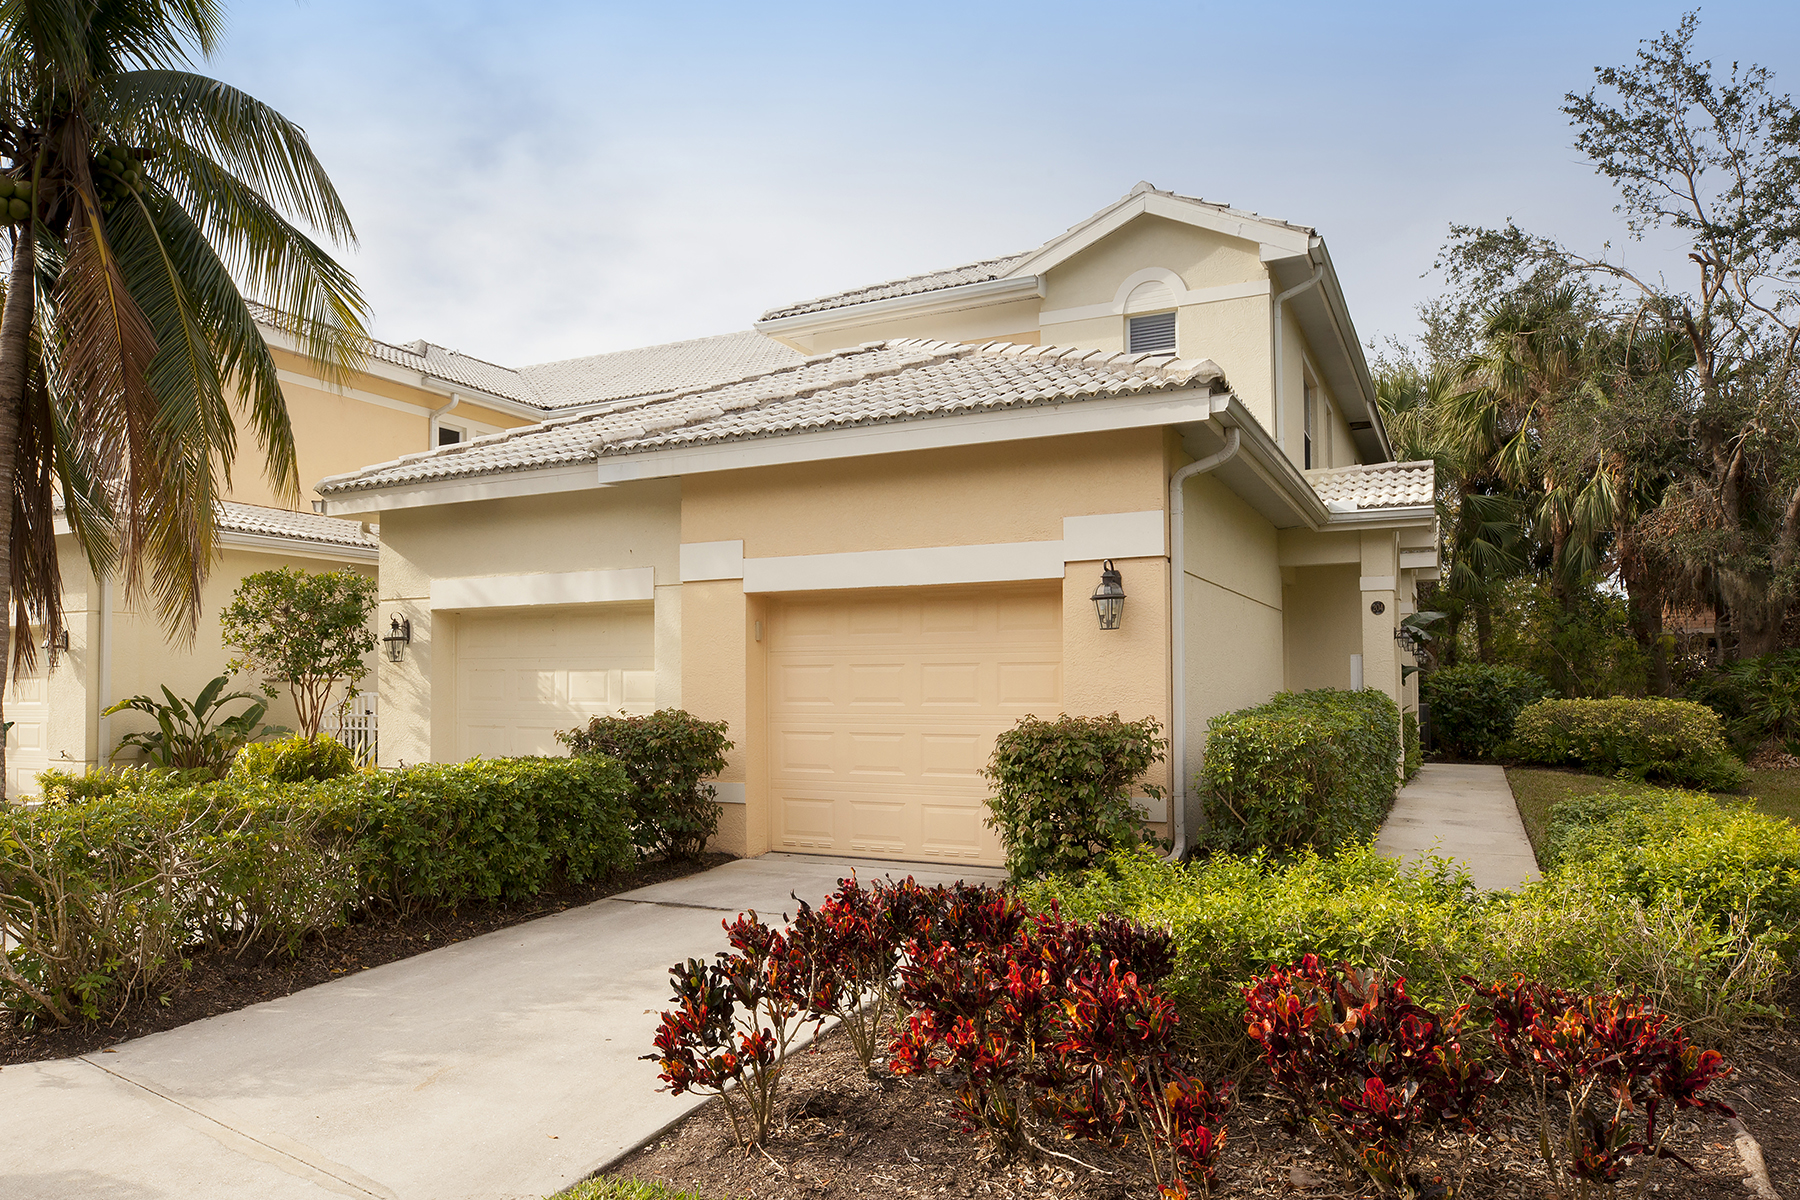 Condominium for Sale at FIDDLERS CREEK 4705 Hawks Nest Way 104, Naples, Florida 34114 United States